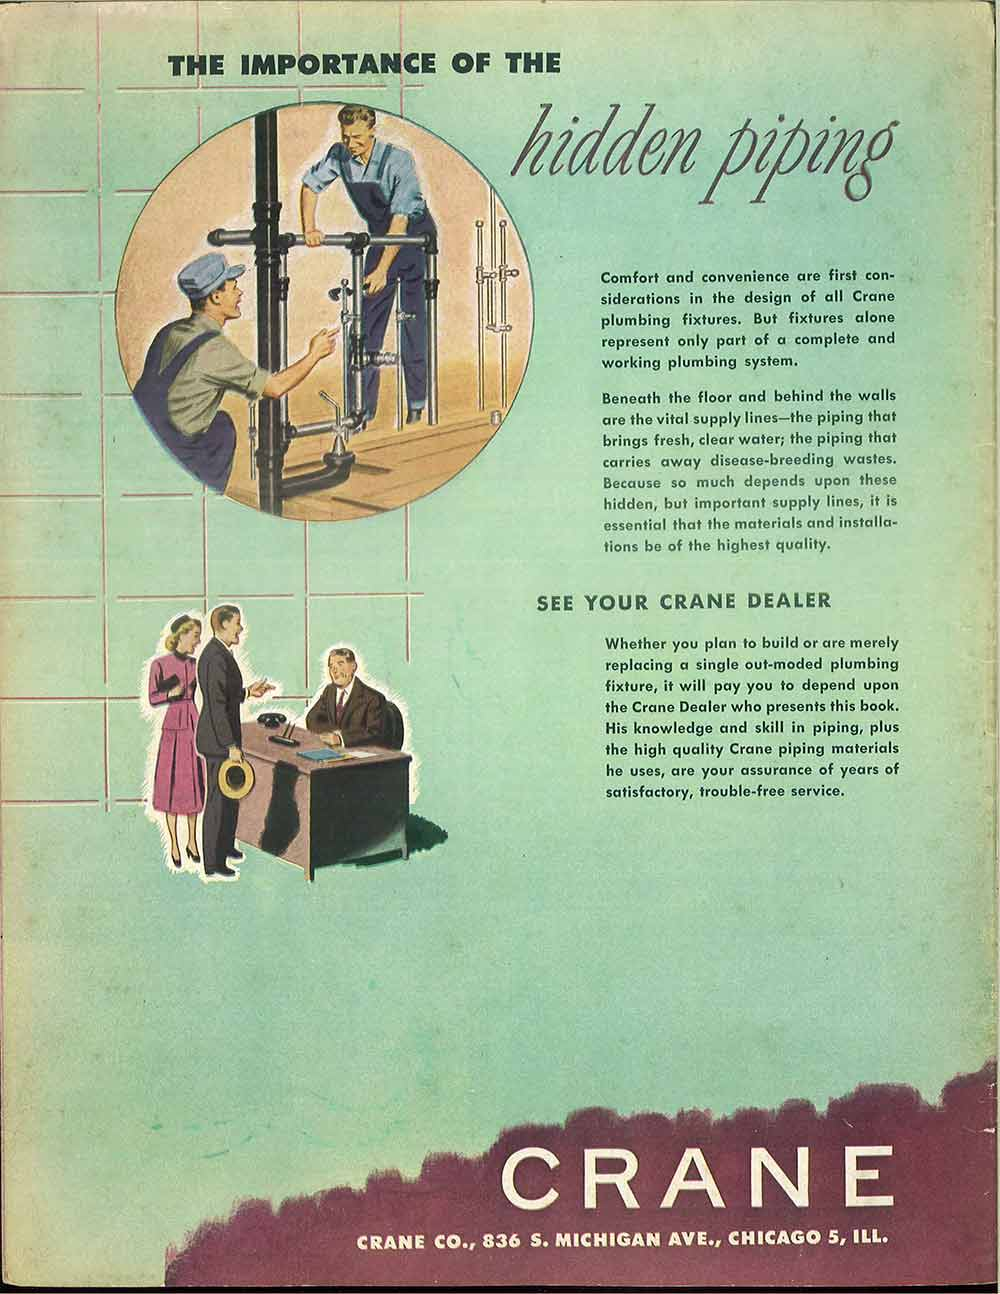 24 pages of vintage bathroom design ideas from Crane - 1949 catalog ...